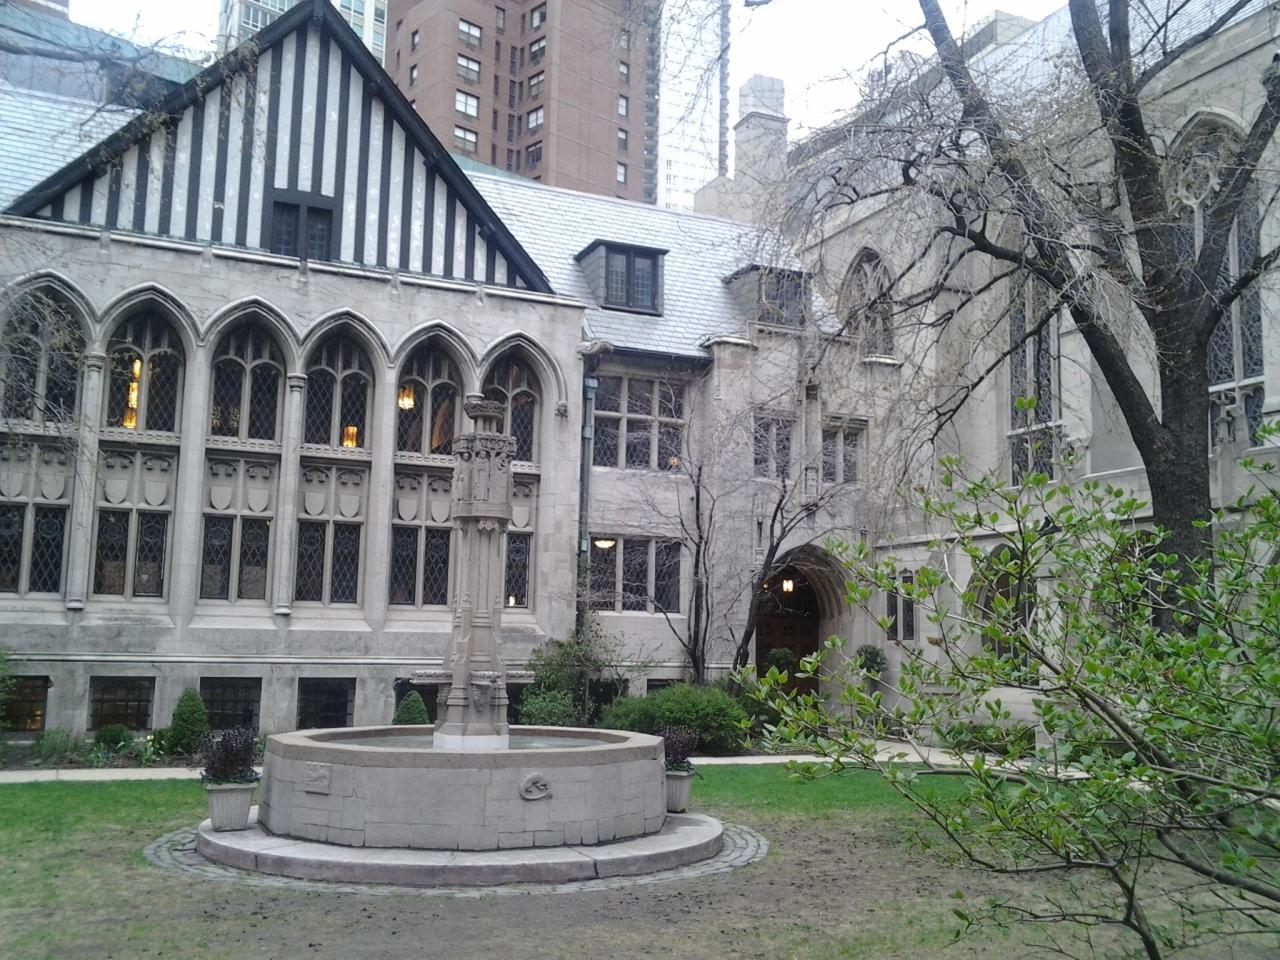 Church courtyard across from the John Hancock tower